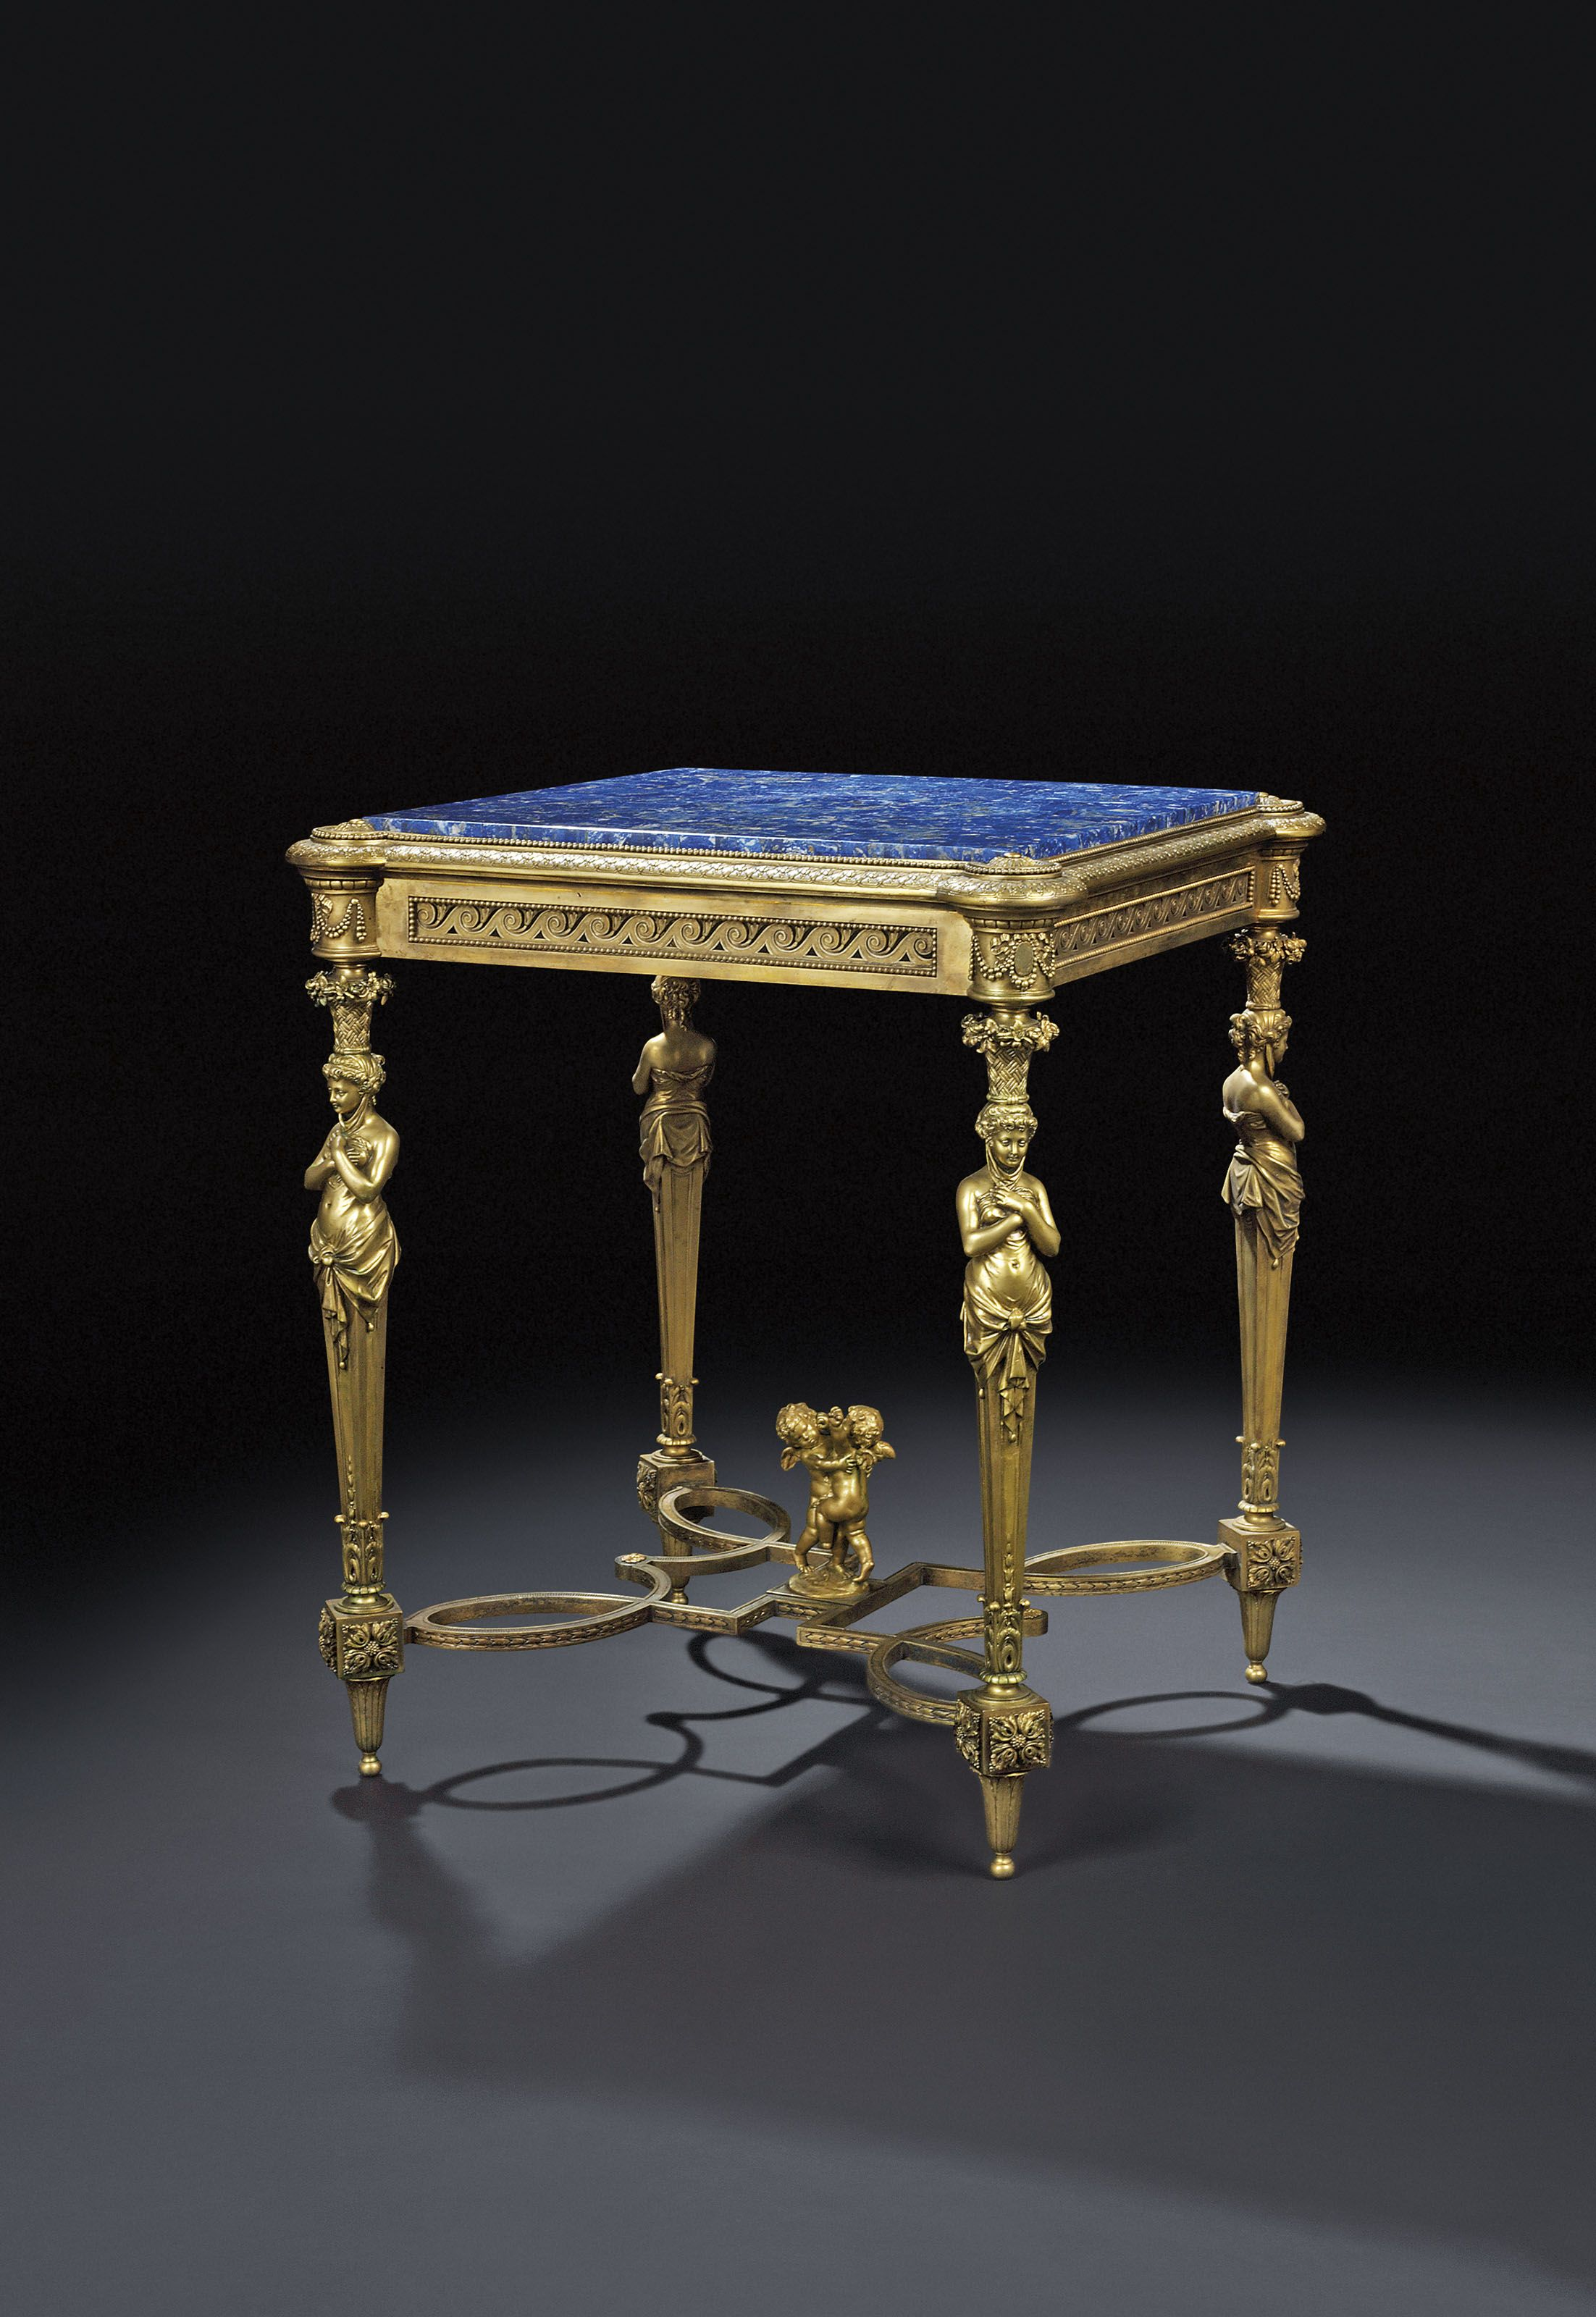 French Ormolu Gueridon In The Manner